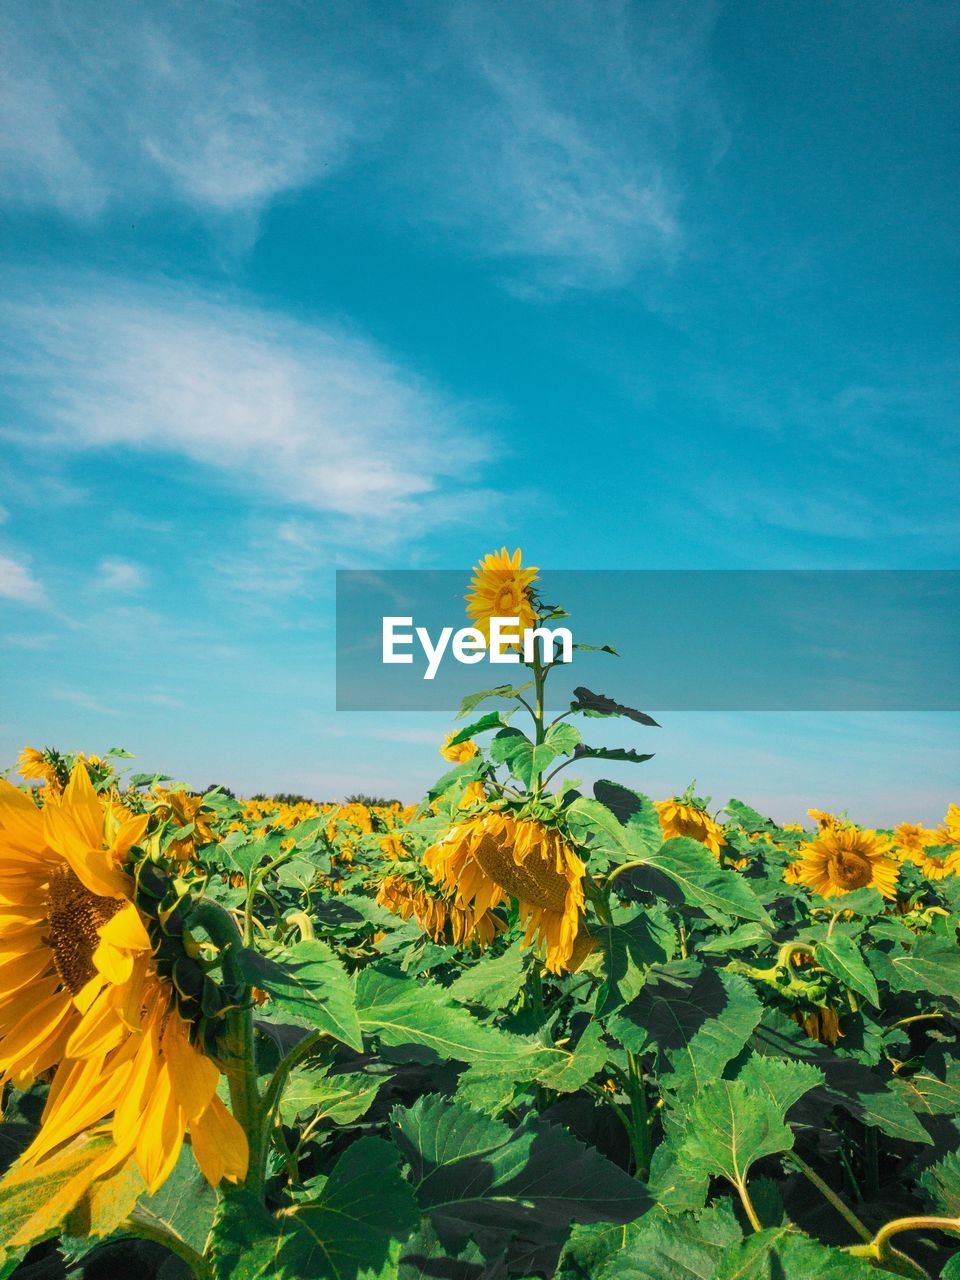 flower, yellow, flowering plant, plant, beauty in nature, growth, fragility, sky, vulnerability, freshness, petal, flower head, nature, sunflower, close-up, inflorescence, plant part, leaf, no people, day, outdoors, sepal, flowerbed